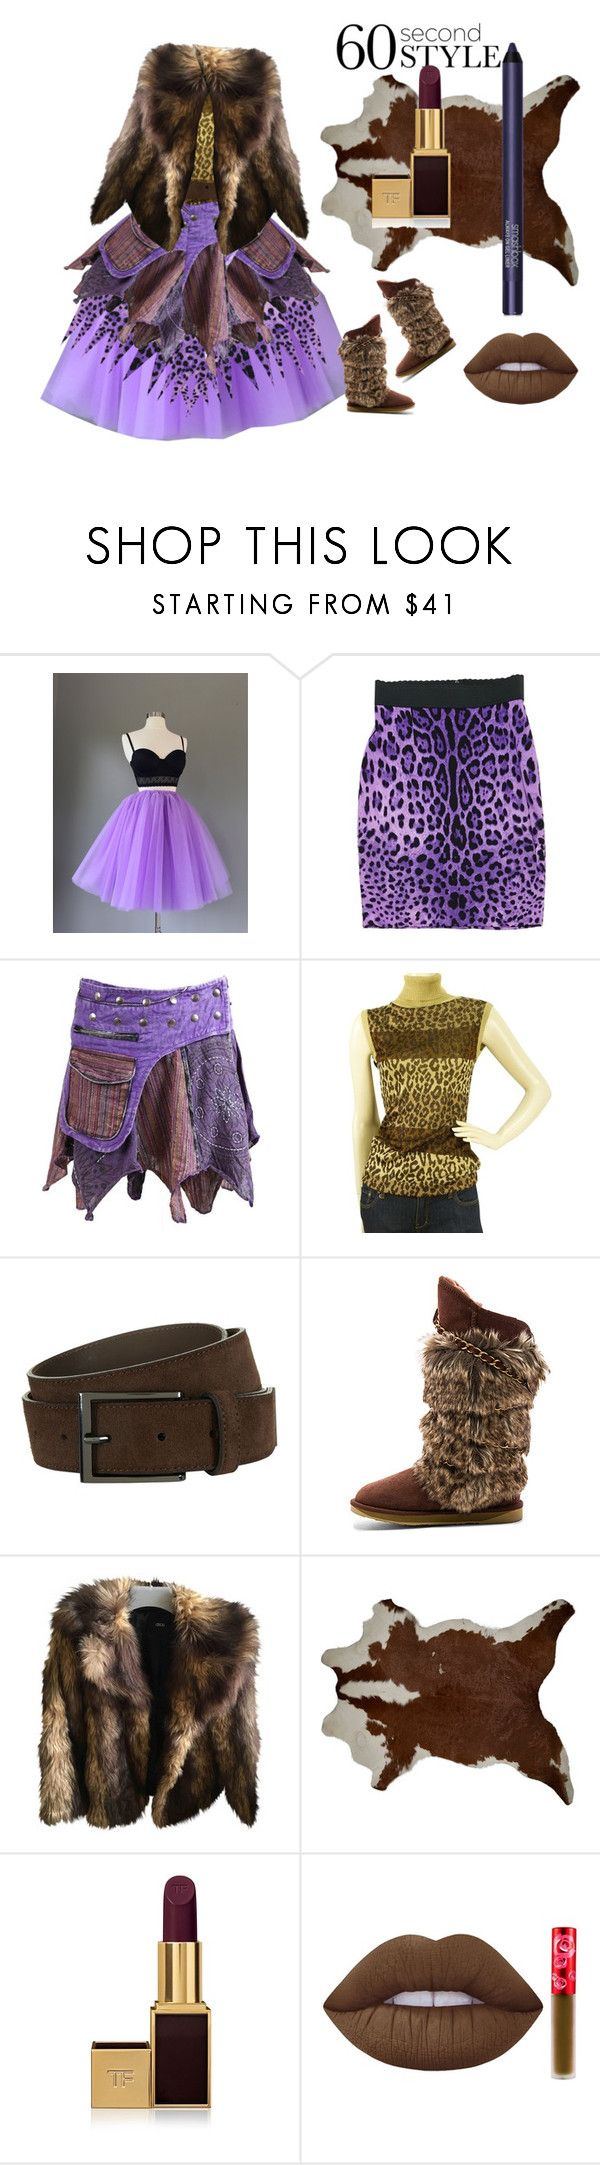 """""""Amazon girl. Asymetric skirt"""" by byasha ❤ liked on Polyvore featuring Dolce&Gabbana, BOSS Hugo Boss, Australia Luxe Collective, ASOS, Tom Ford, Lime Crime, Smashbox, asymmetricskirts and 60secondstyle"""